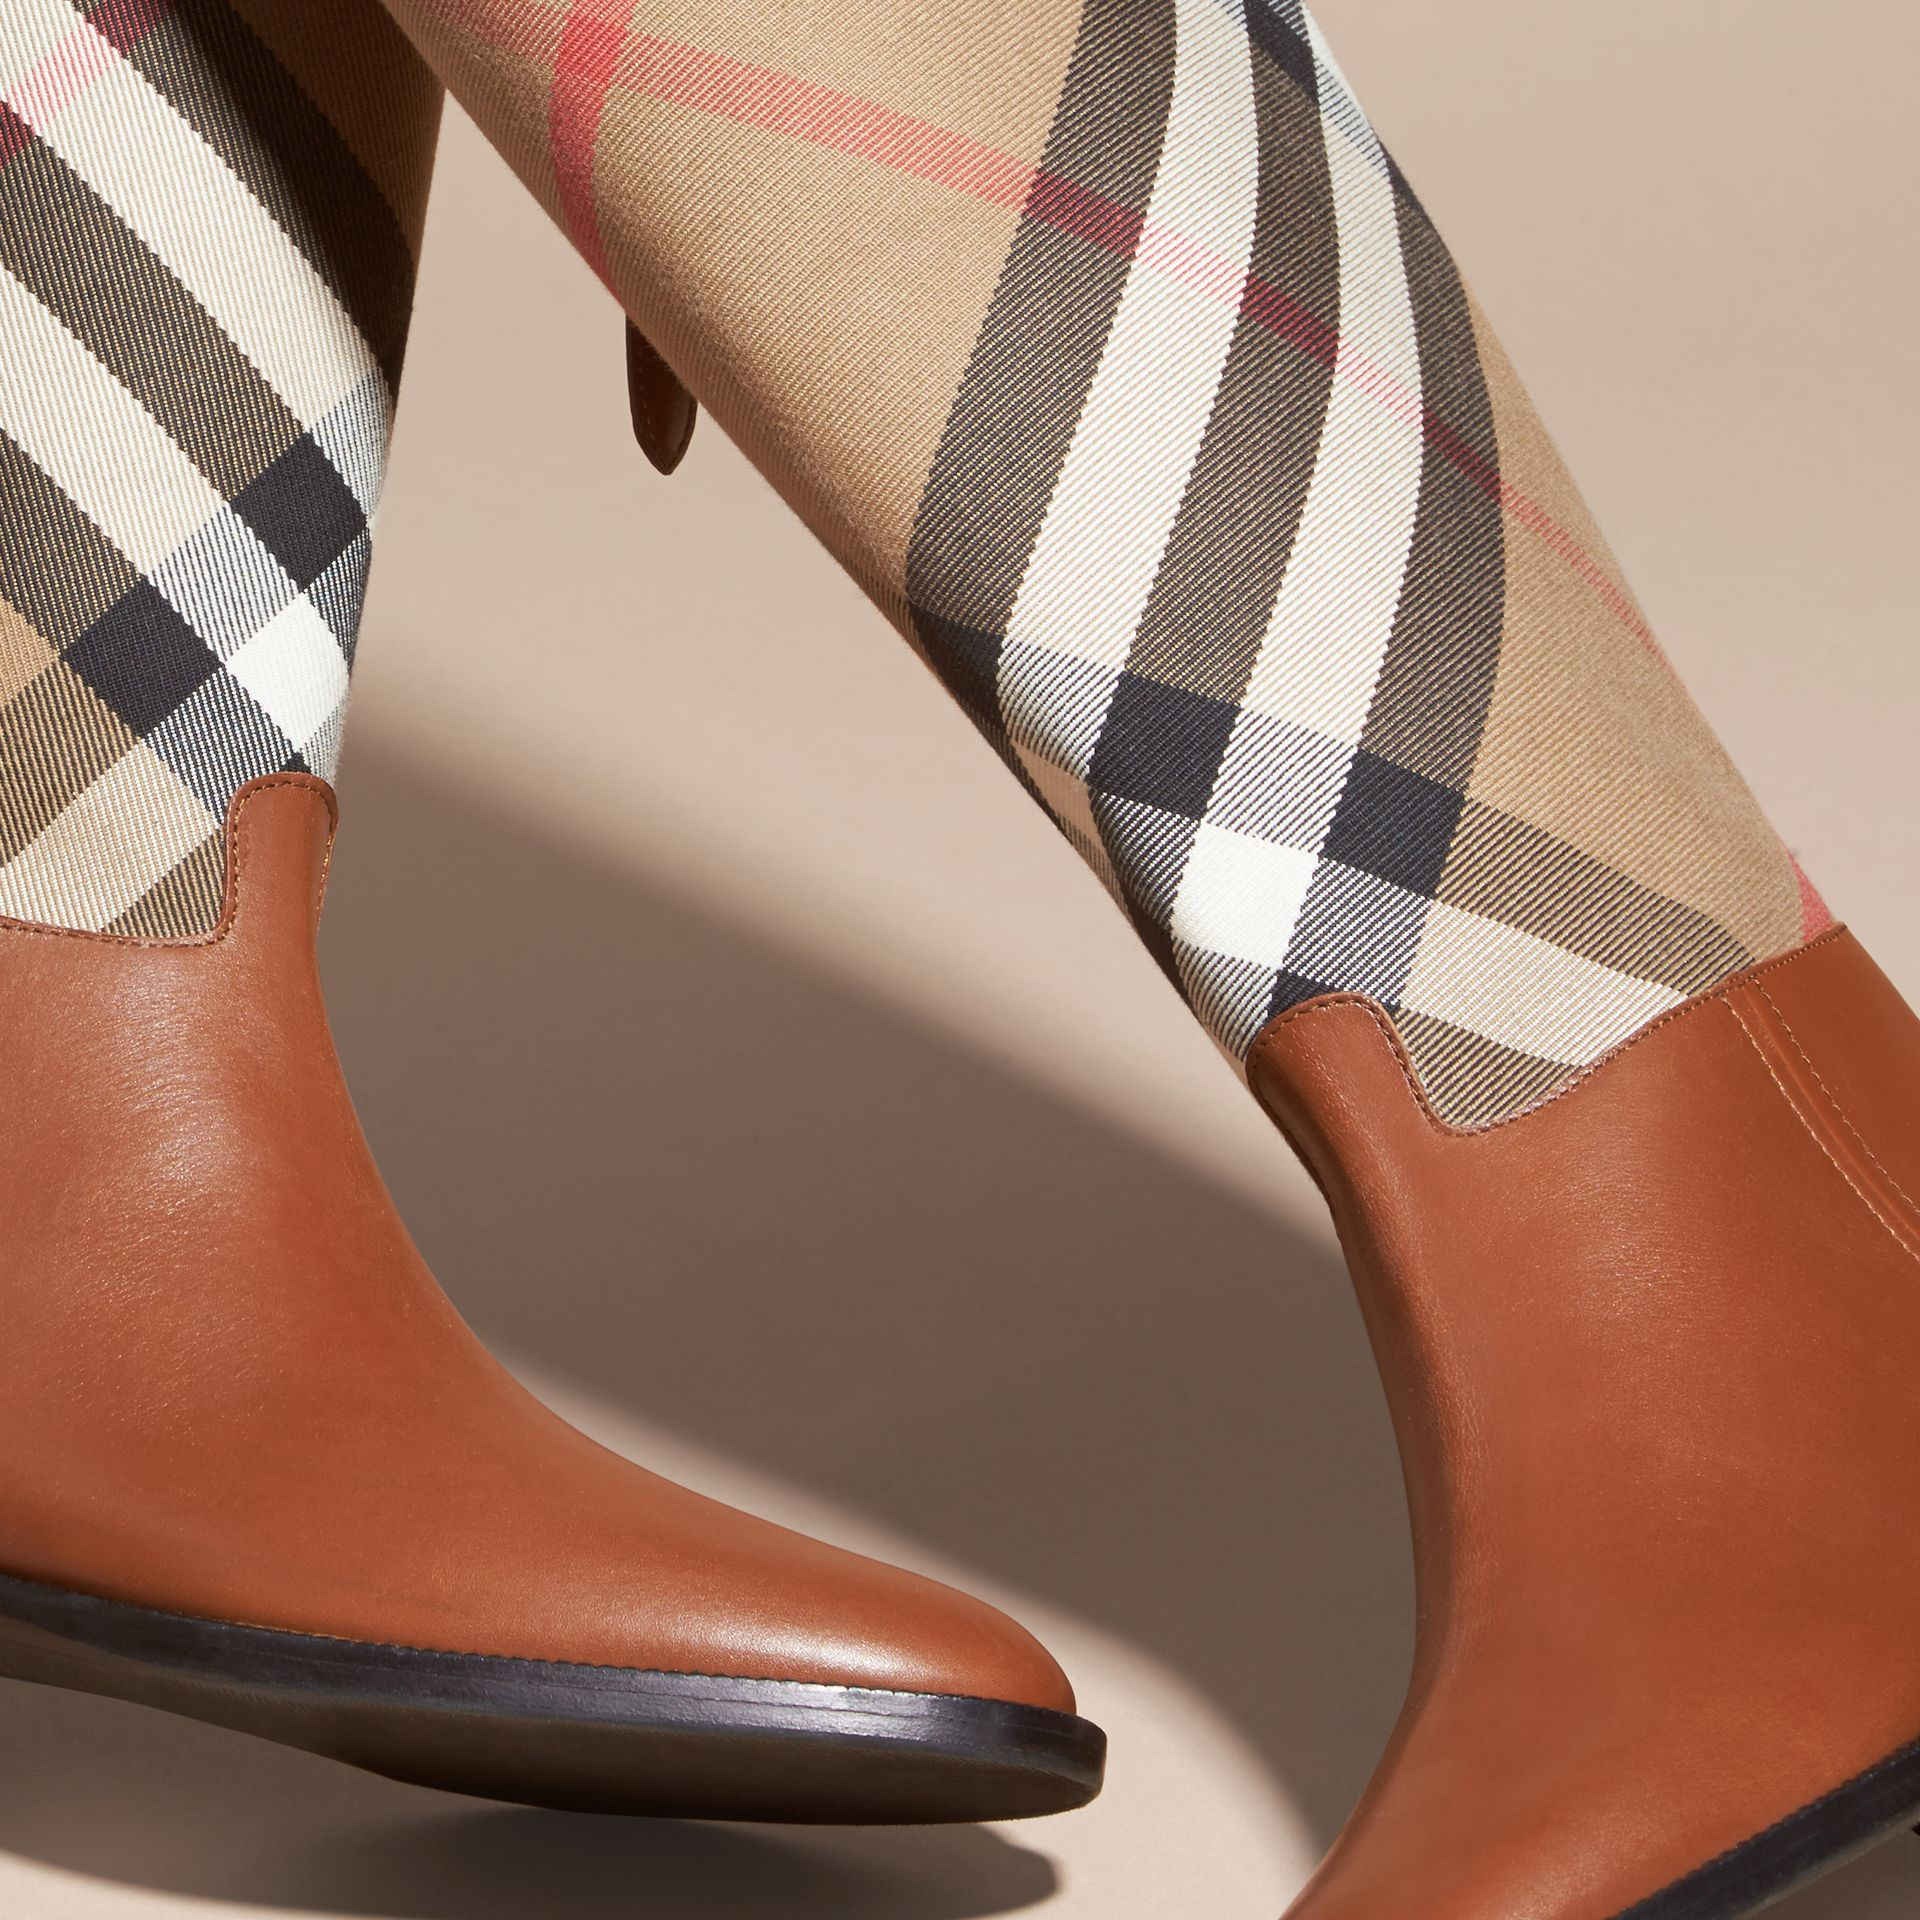 House Check and Leather Riding Boots in Chestnut - Women | Burberry - gallery image 5